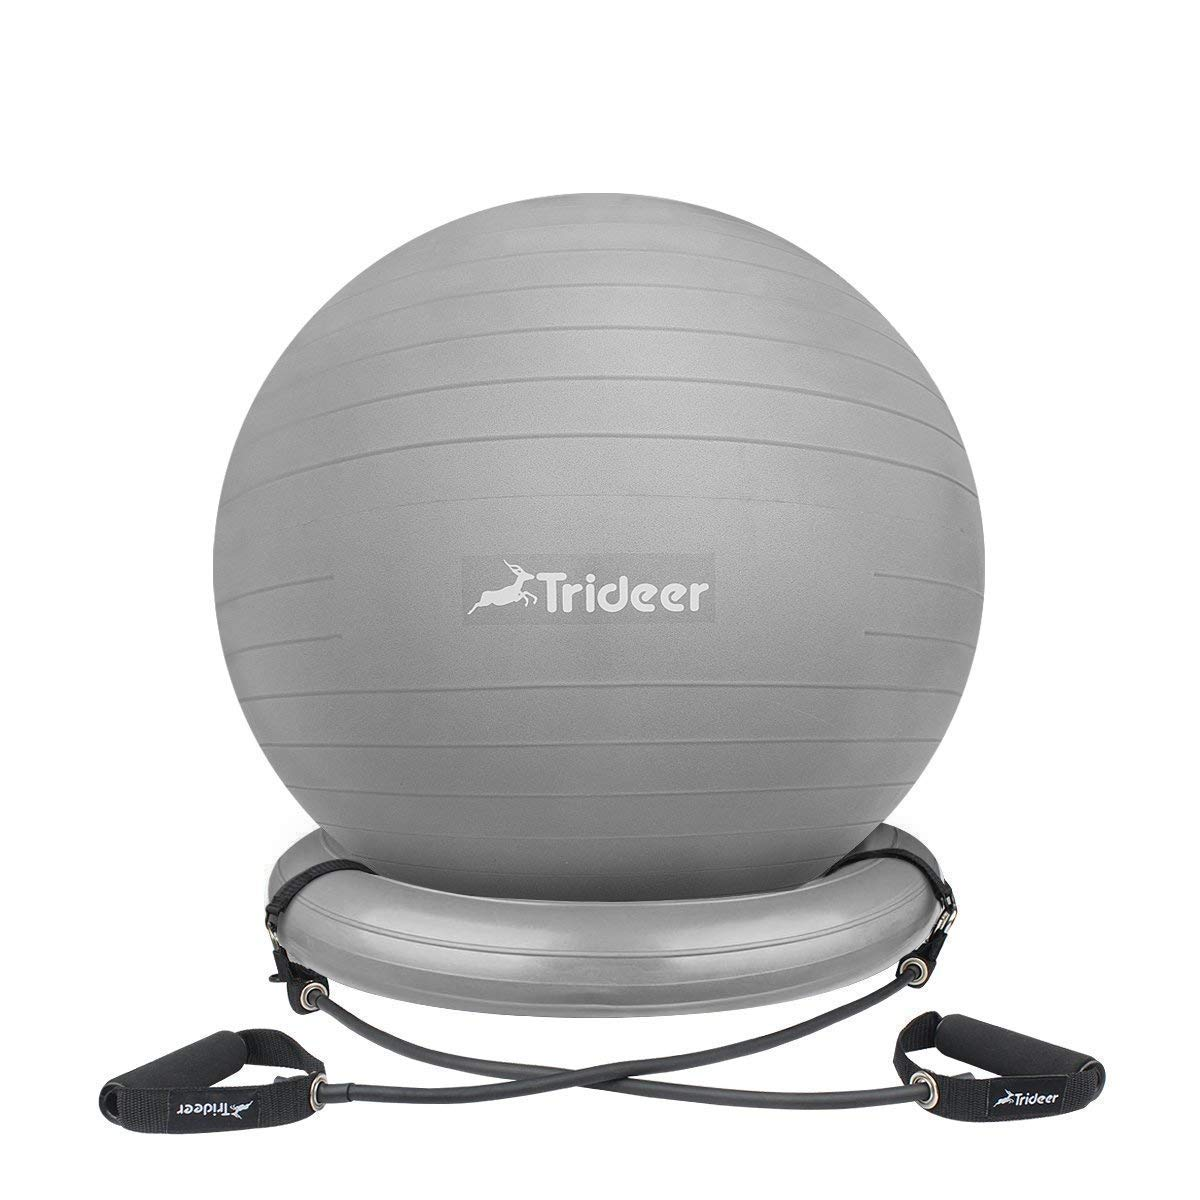 Trideer Ball Chair, Exercise Stability Yoga Ball with Base & Resistance Bands for Home and Office Desk, Flexible Ball Seat with Pump, Improves Balance, Core Strength & Posture (Silver, 75cm) by Trideer